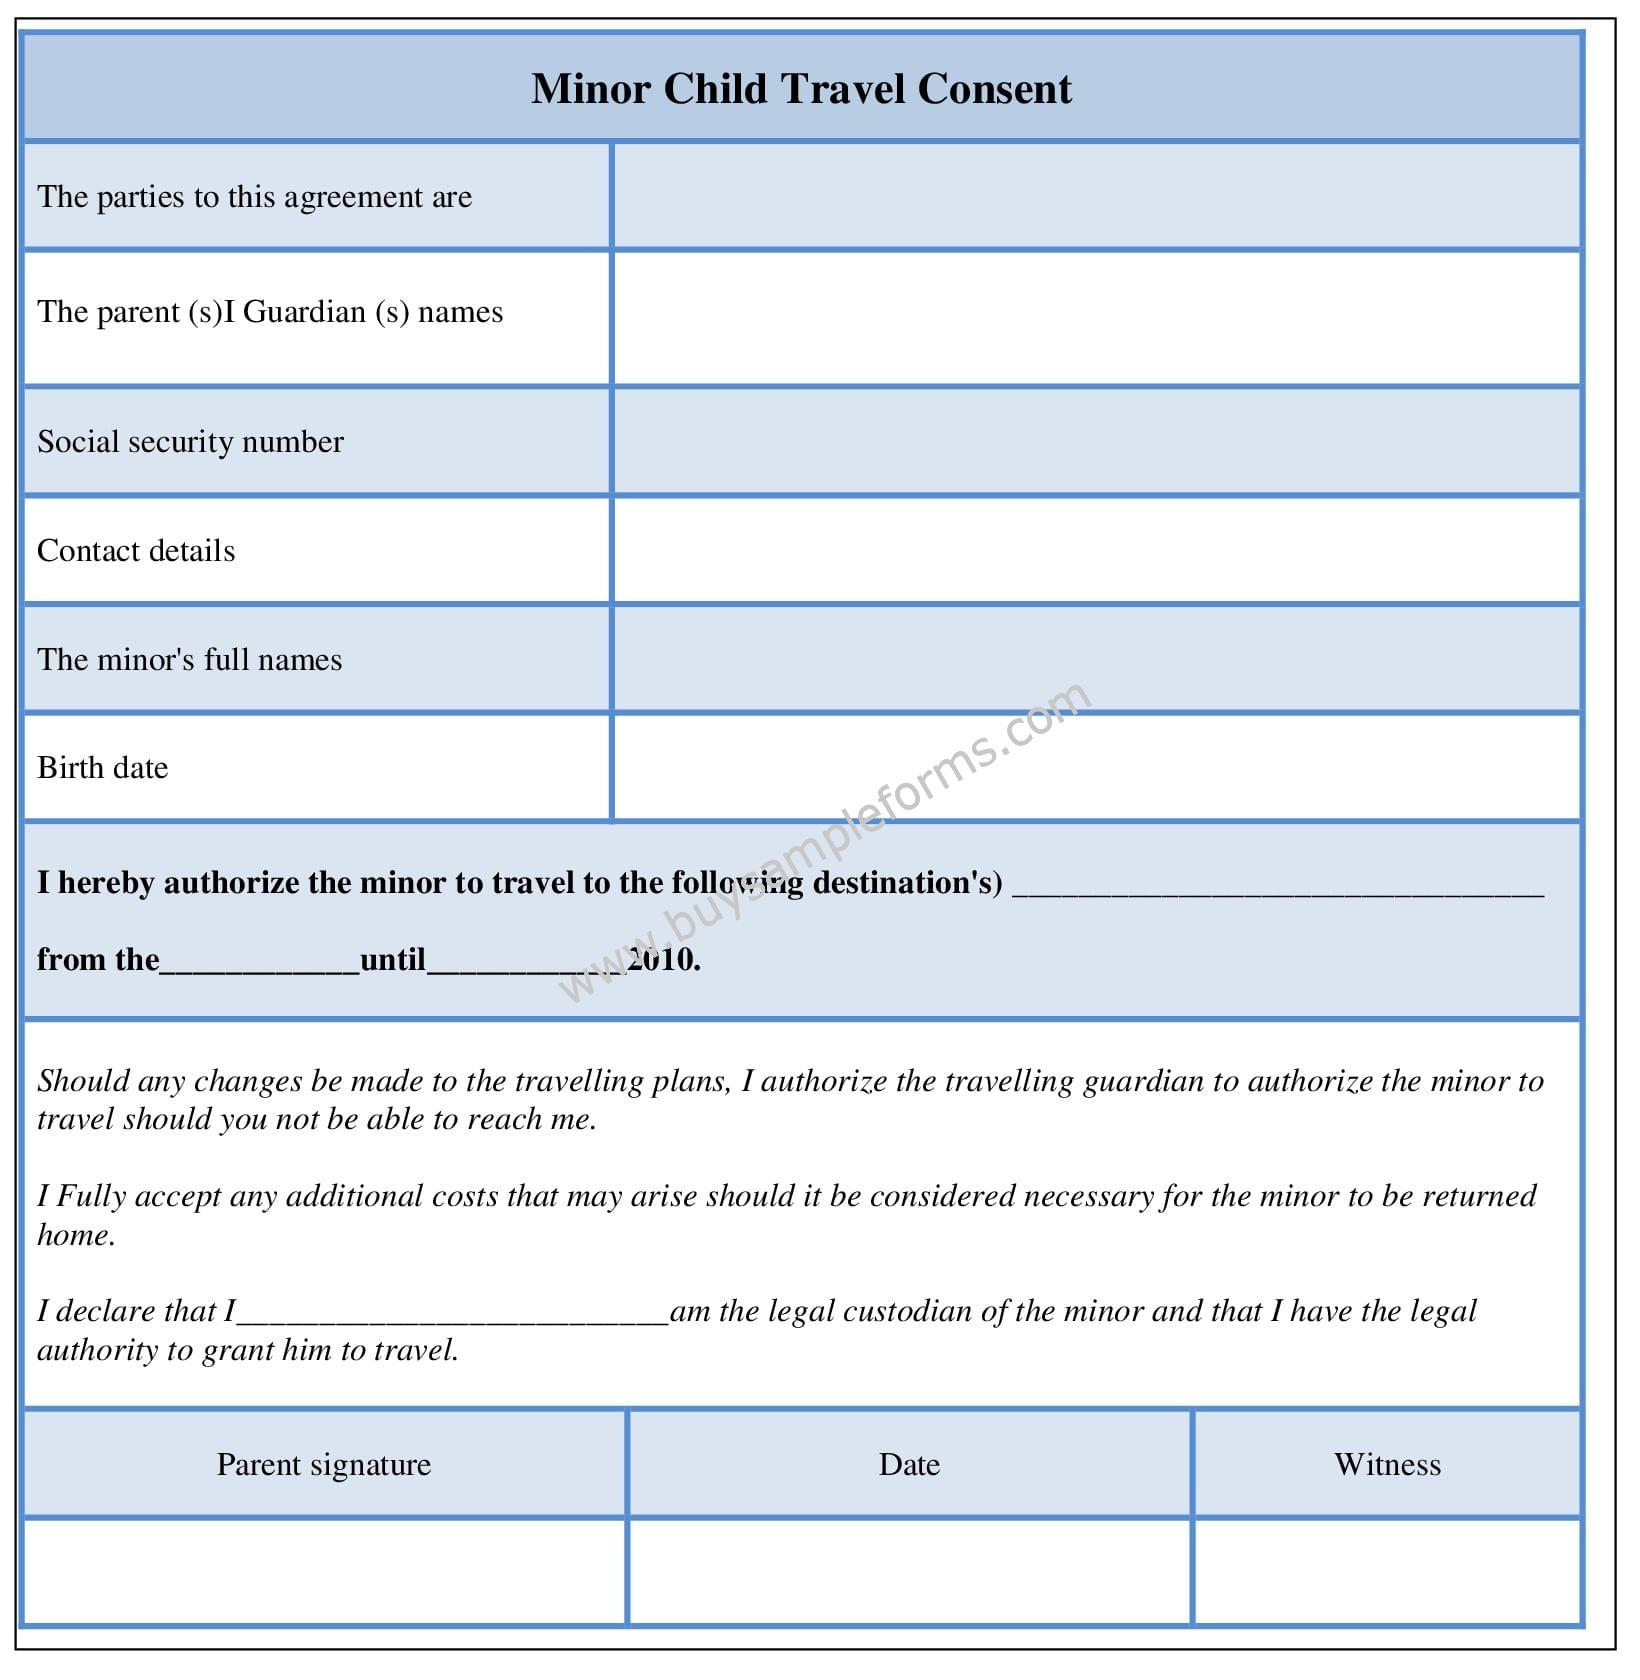 Minor Child Travel Consent Form - Sample Consent Template